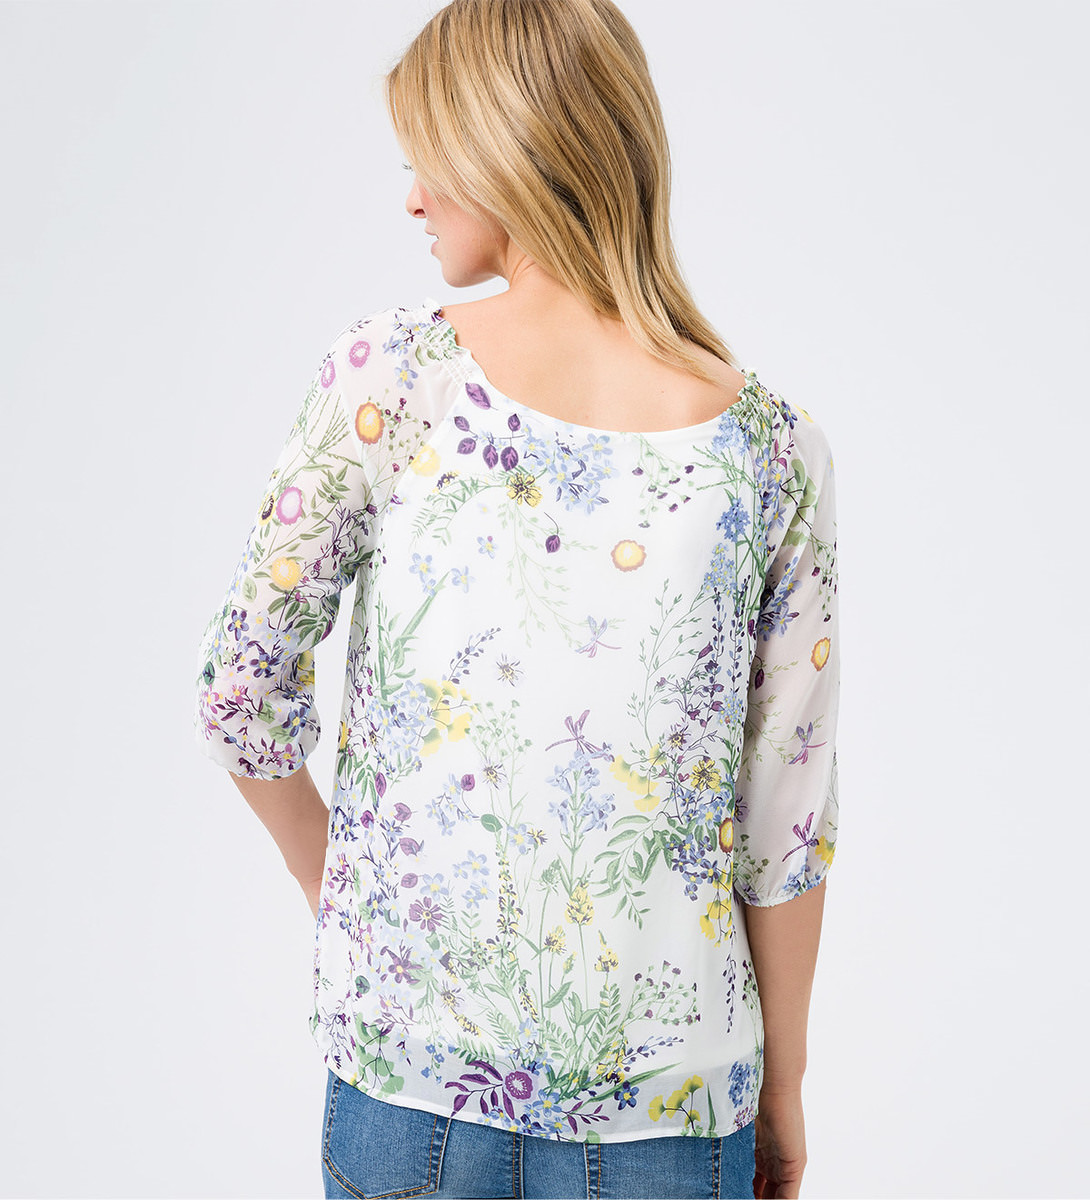 Blusenshirt mit floralem Muster in soft white